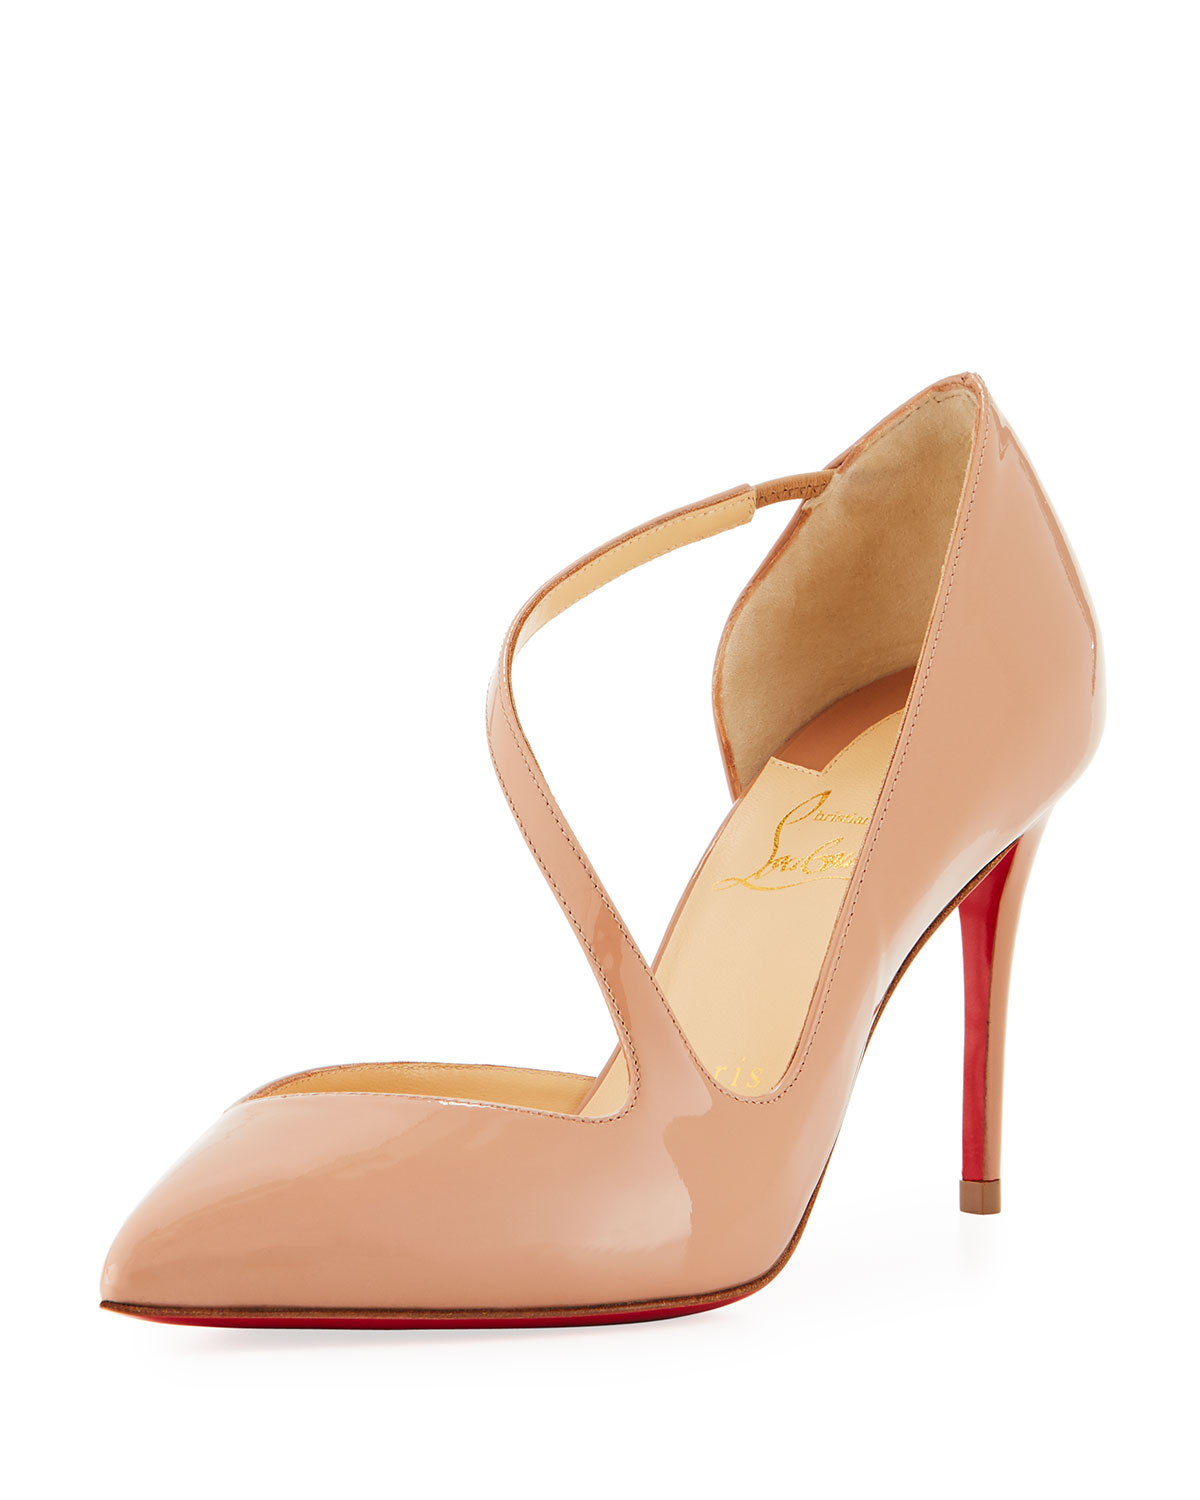 best service 43088 4151e Jumping Asymmetric Red Sole Pump